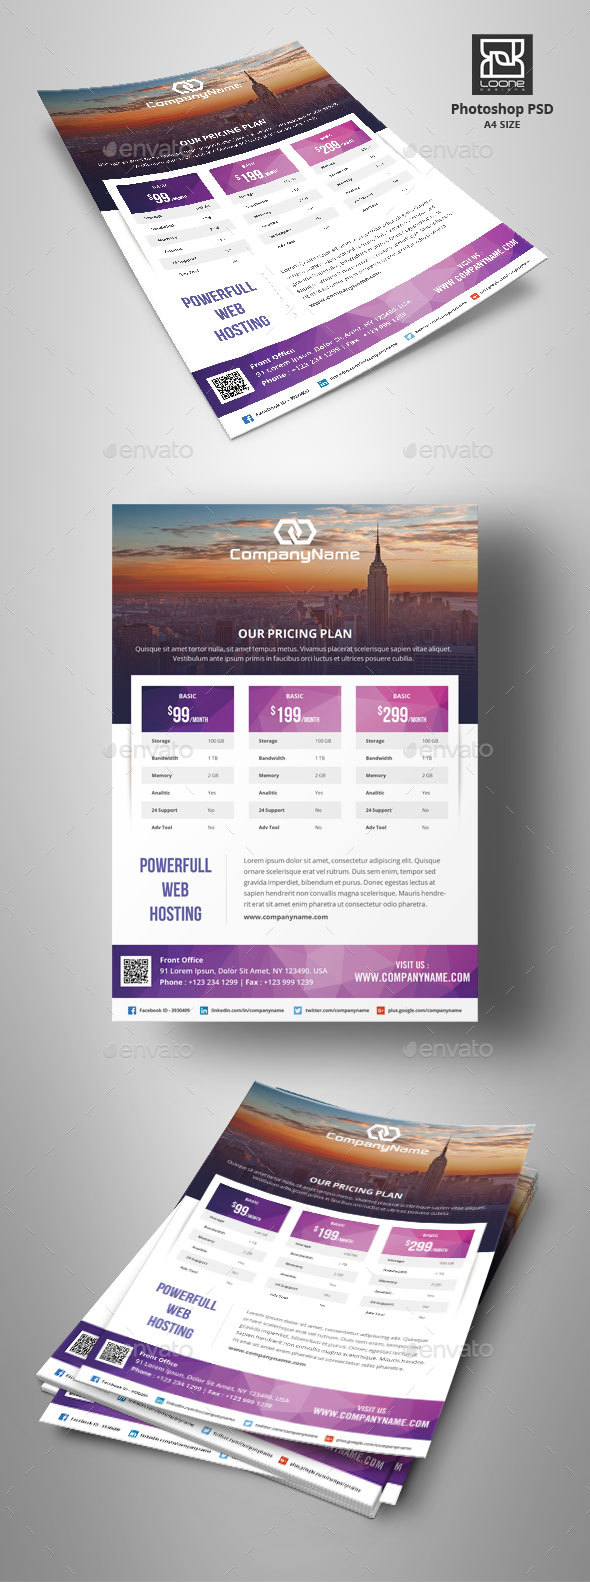 Web Hosting Flyer - Corporate Flyers